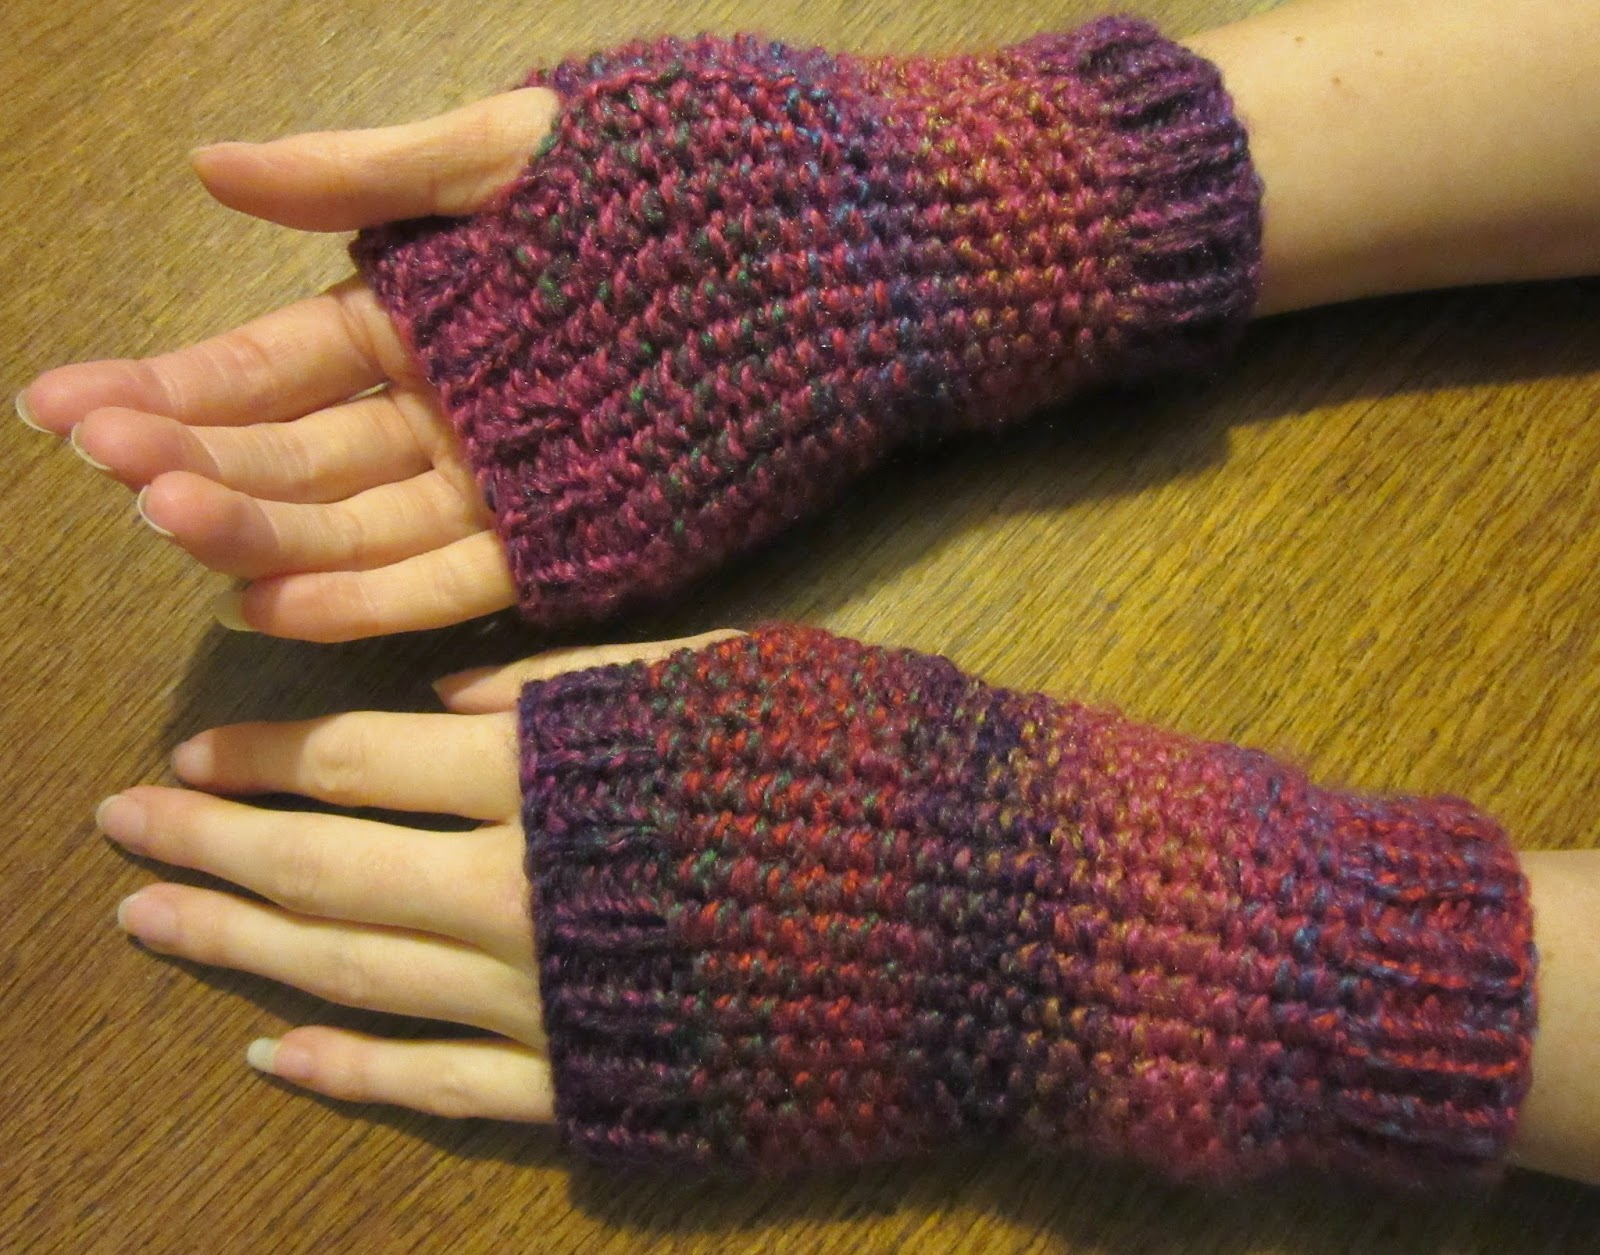 Knit Arm Warmer Pattern : Handmadebymeg: Free Simple Knitting Pattern for Wrist Warmers